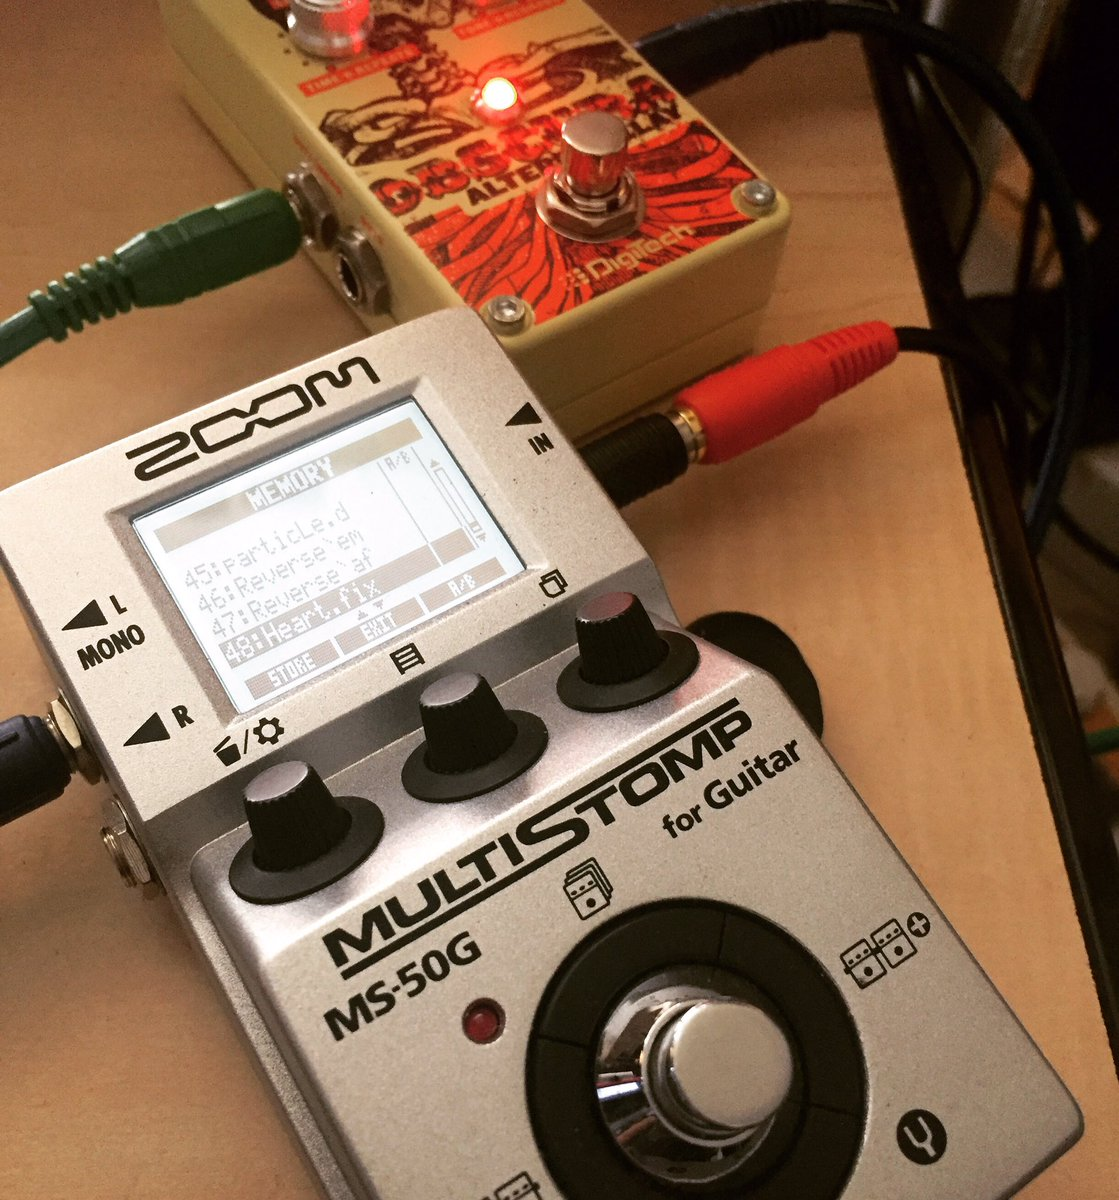 the real dynamic duo, these babies play so well together 🎸  #zoom #ms50g #obscura #digitech #sweetguitarnoize https://t.co/4LNhP5IQUr